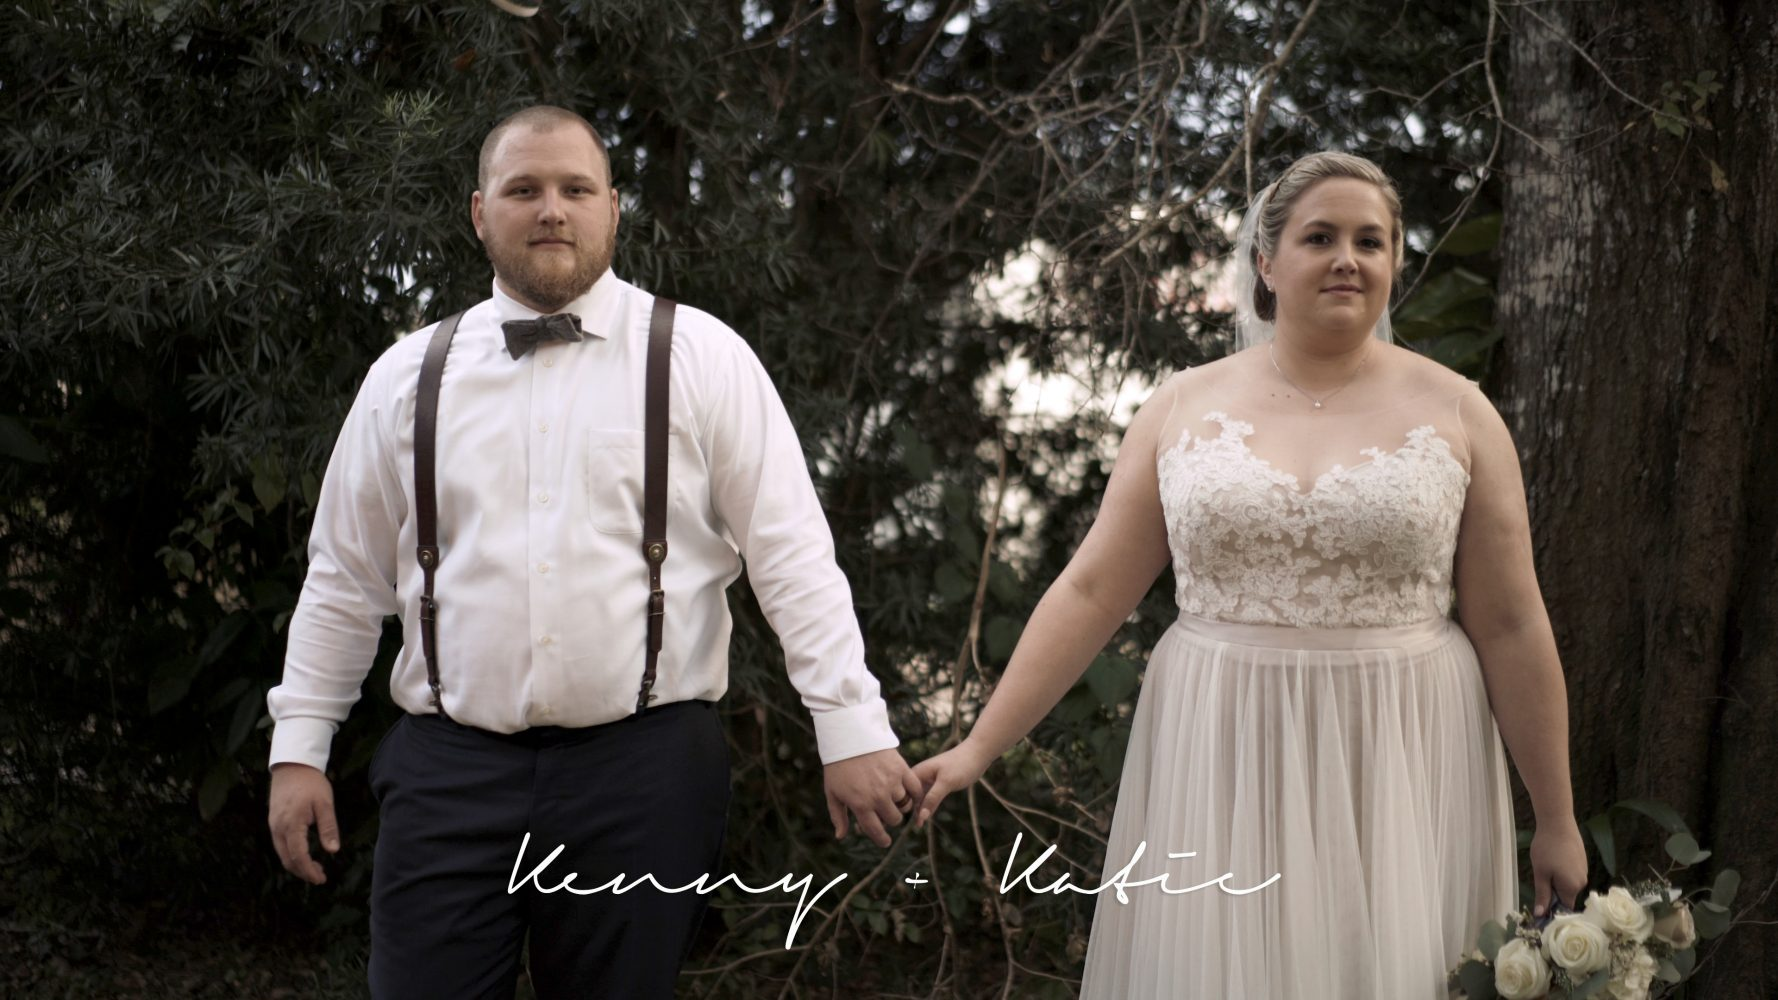 Katie + Kenny | Vero Beach, Florida | Waldo's Secret Garden